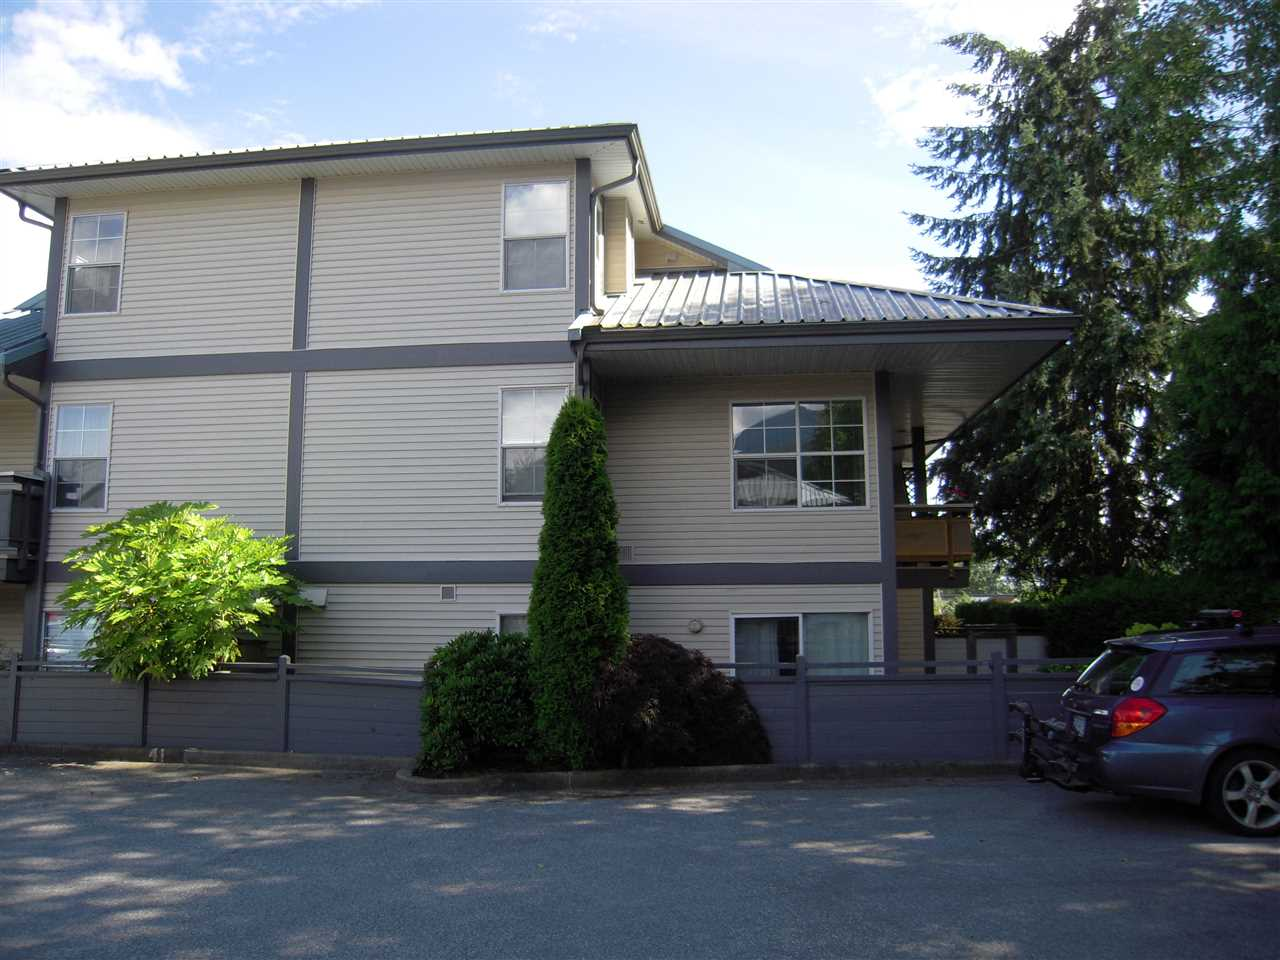 Main Photo: 43 689 PARK Road in Gibsons: Gibsons & Area Condo for sale (Sunshine Coast)  : MLS® # R2081854